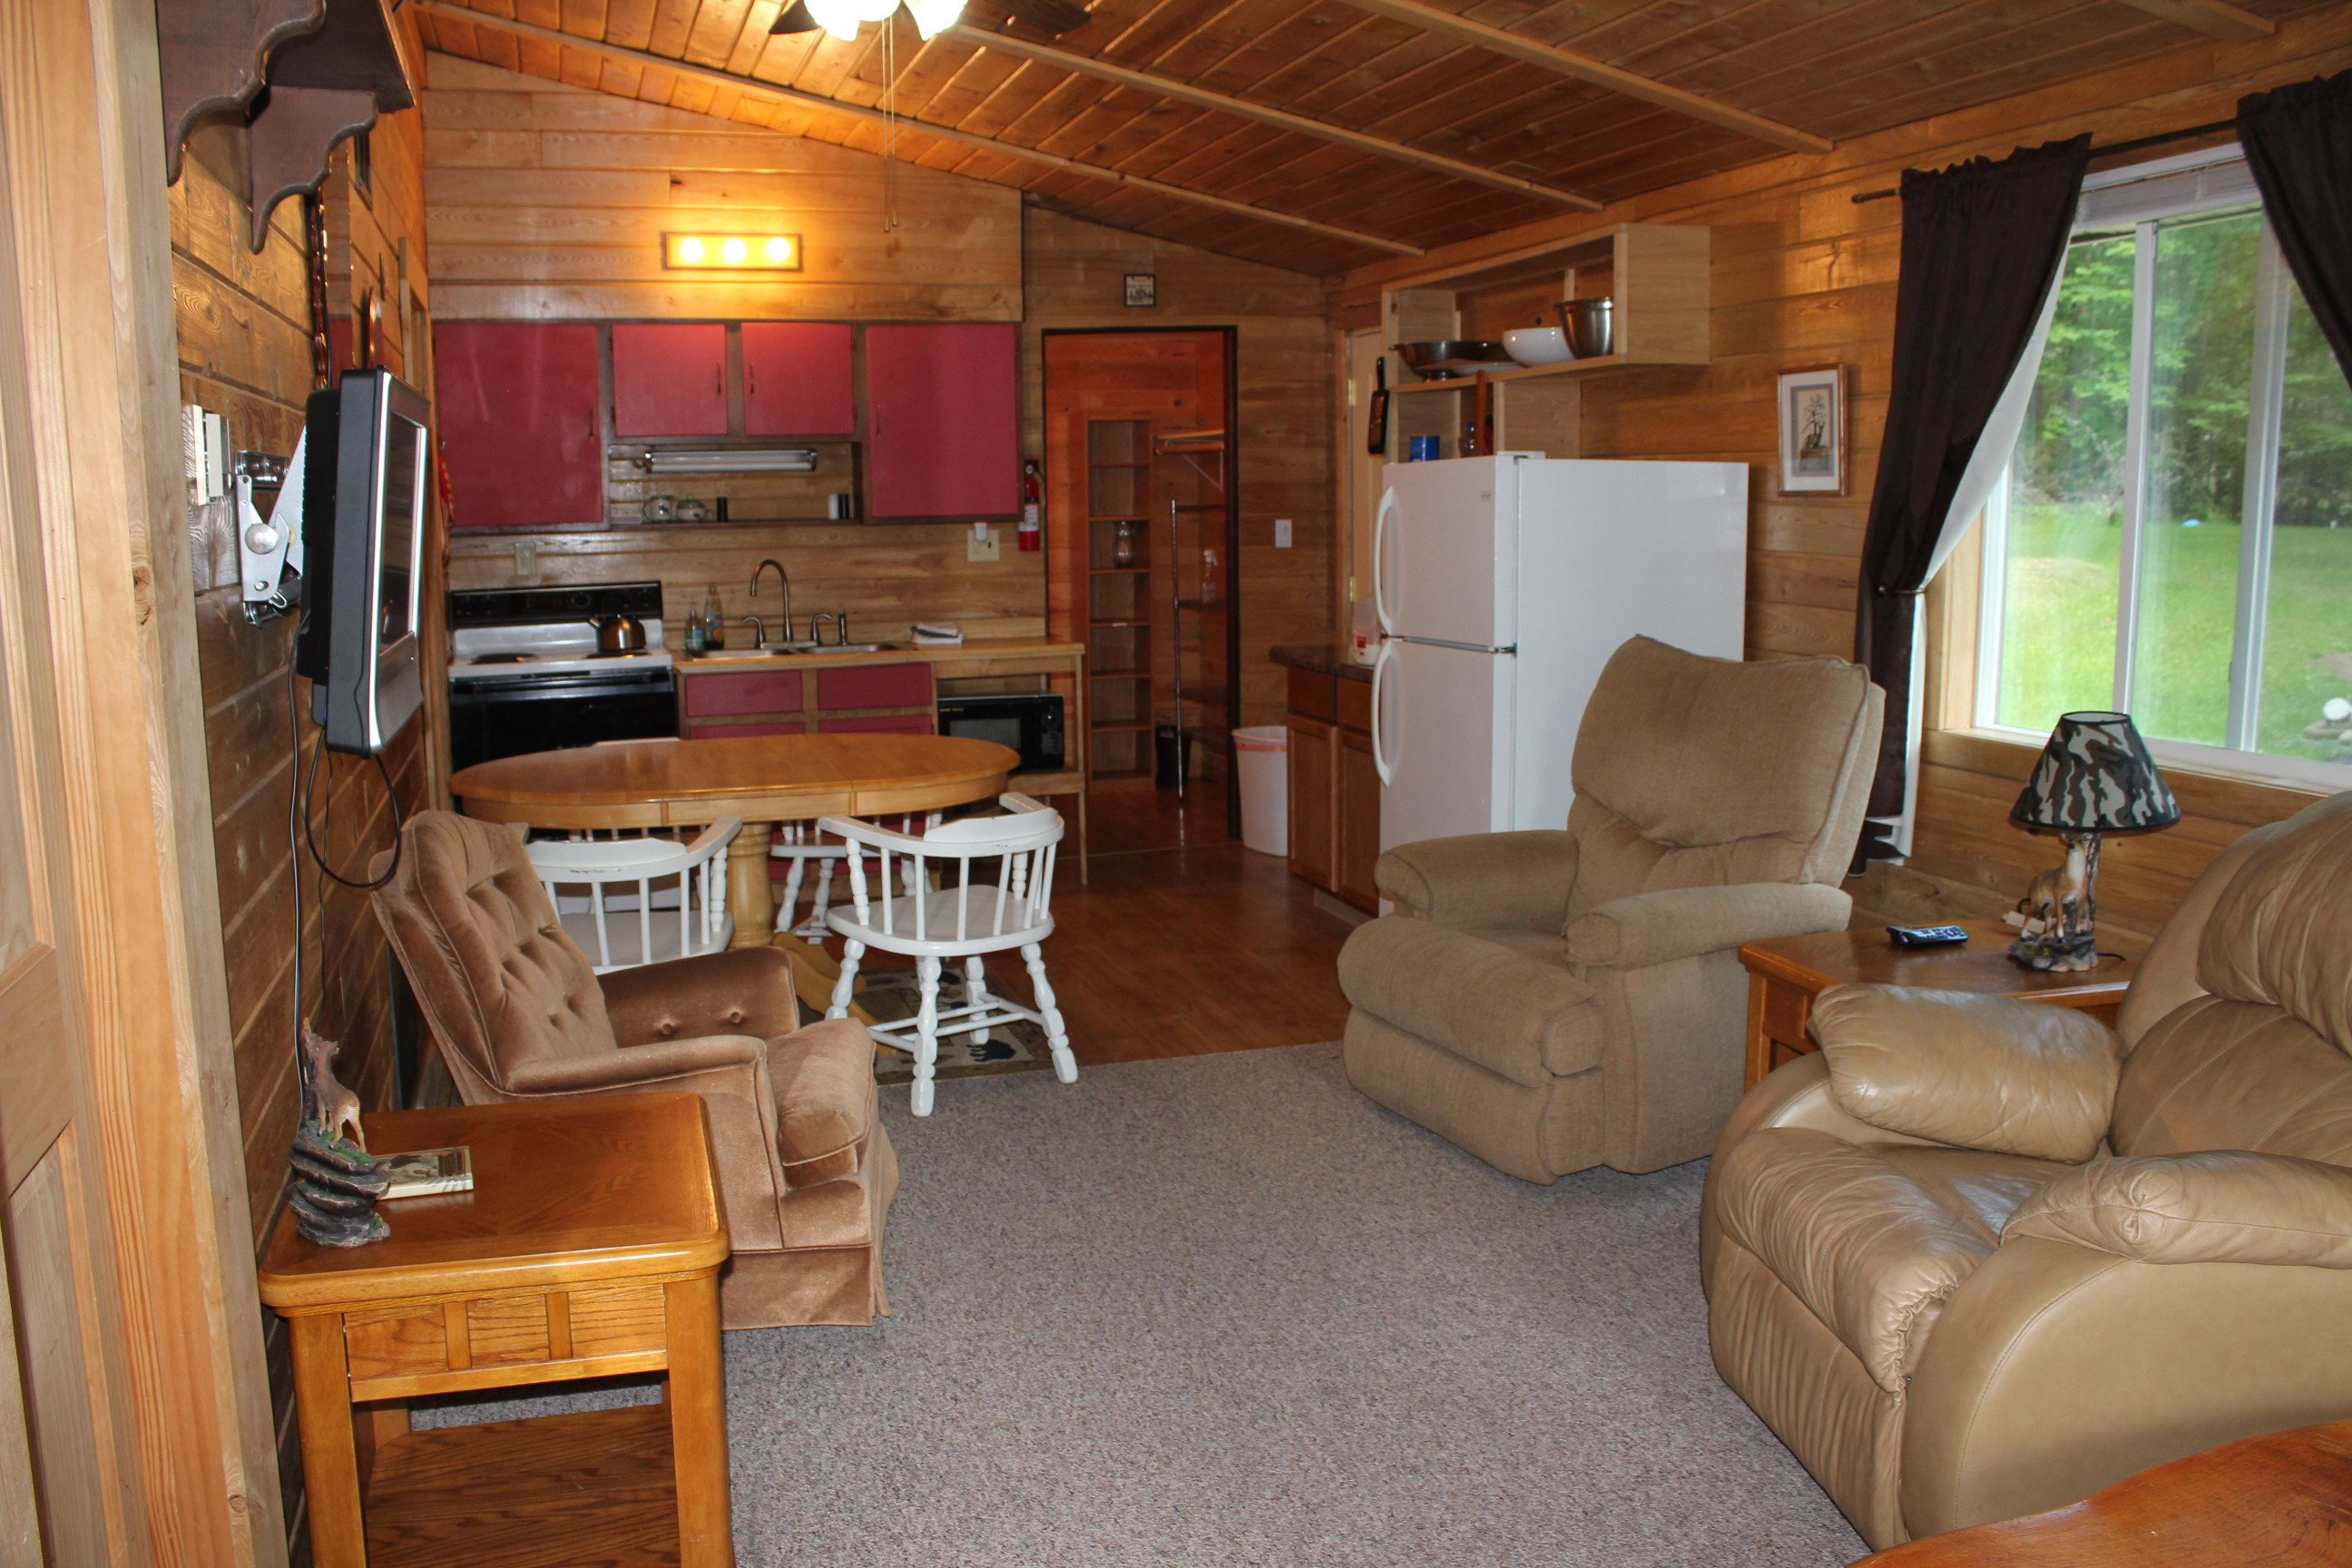 Cabin rental unit # 2